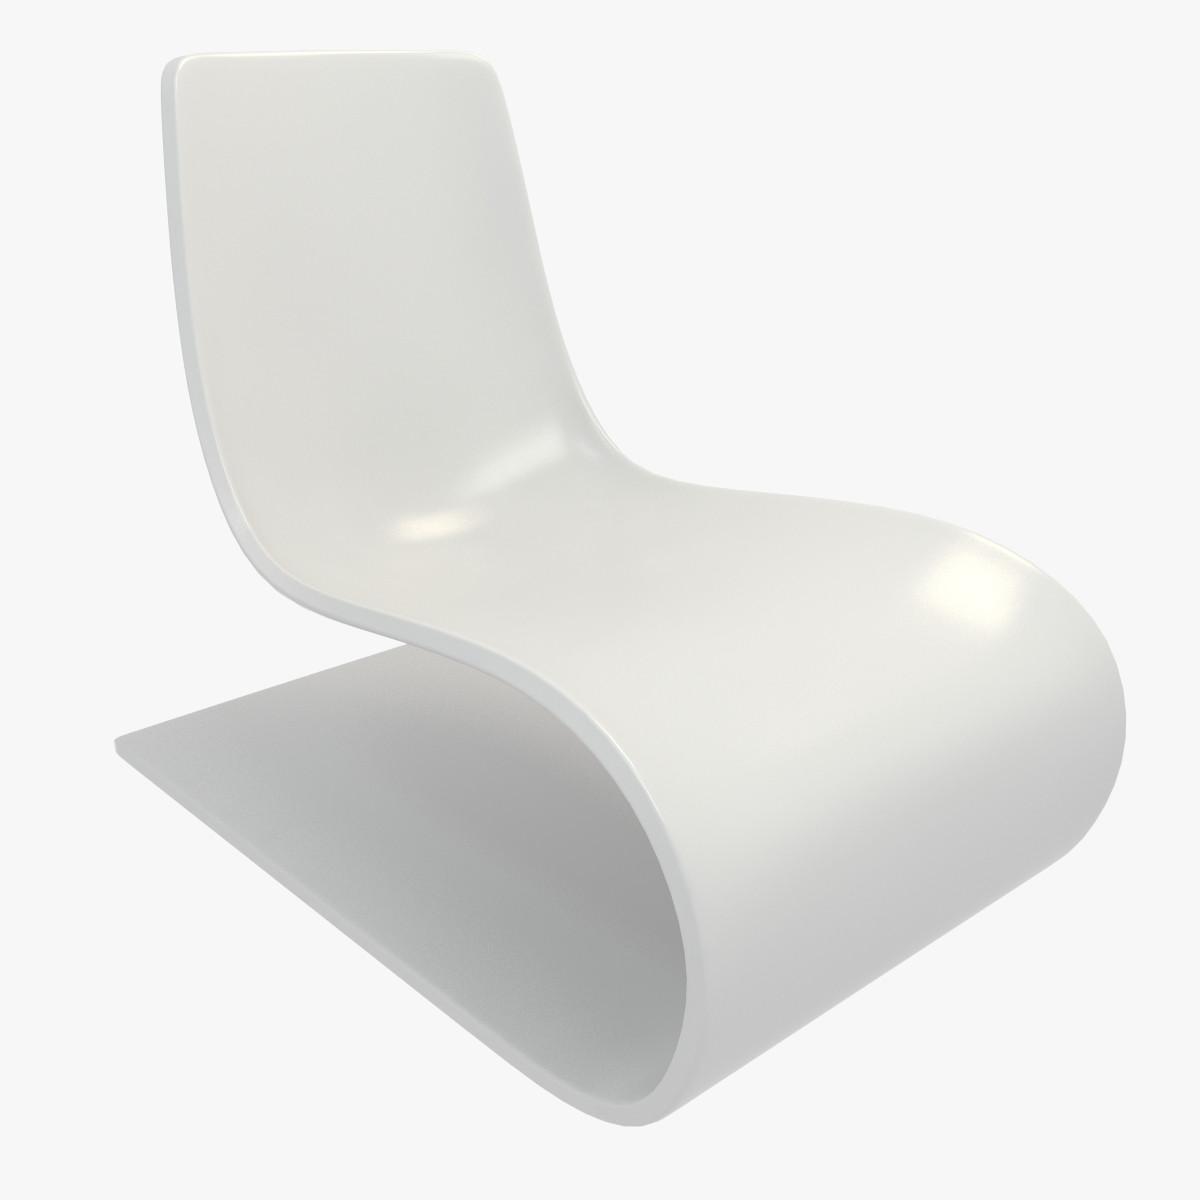 3dsmax plastic lounge chair for Pvc pipe lounge chair